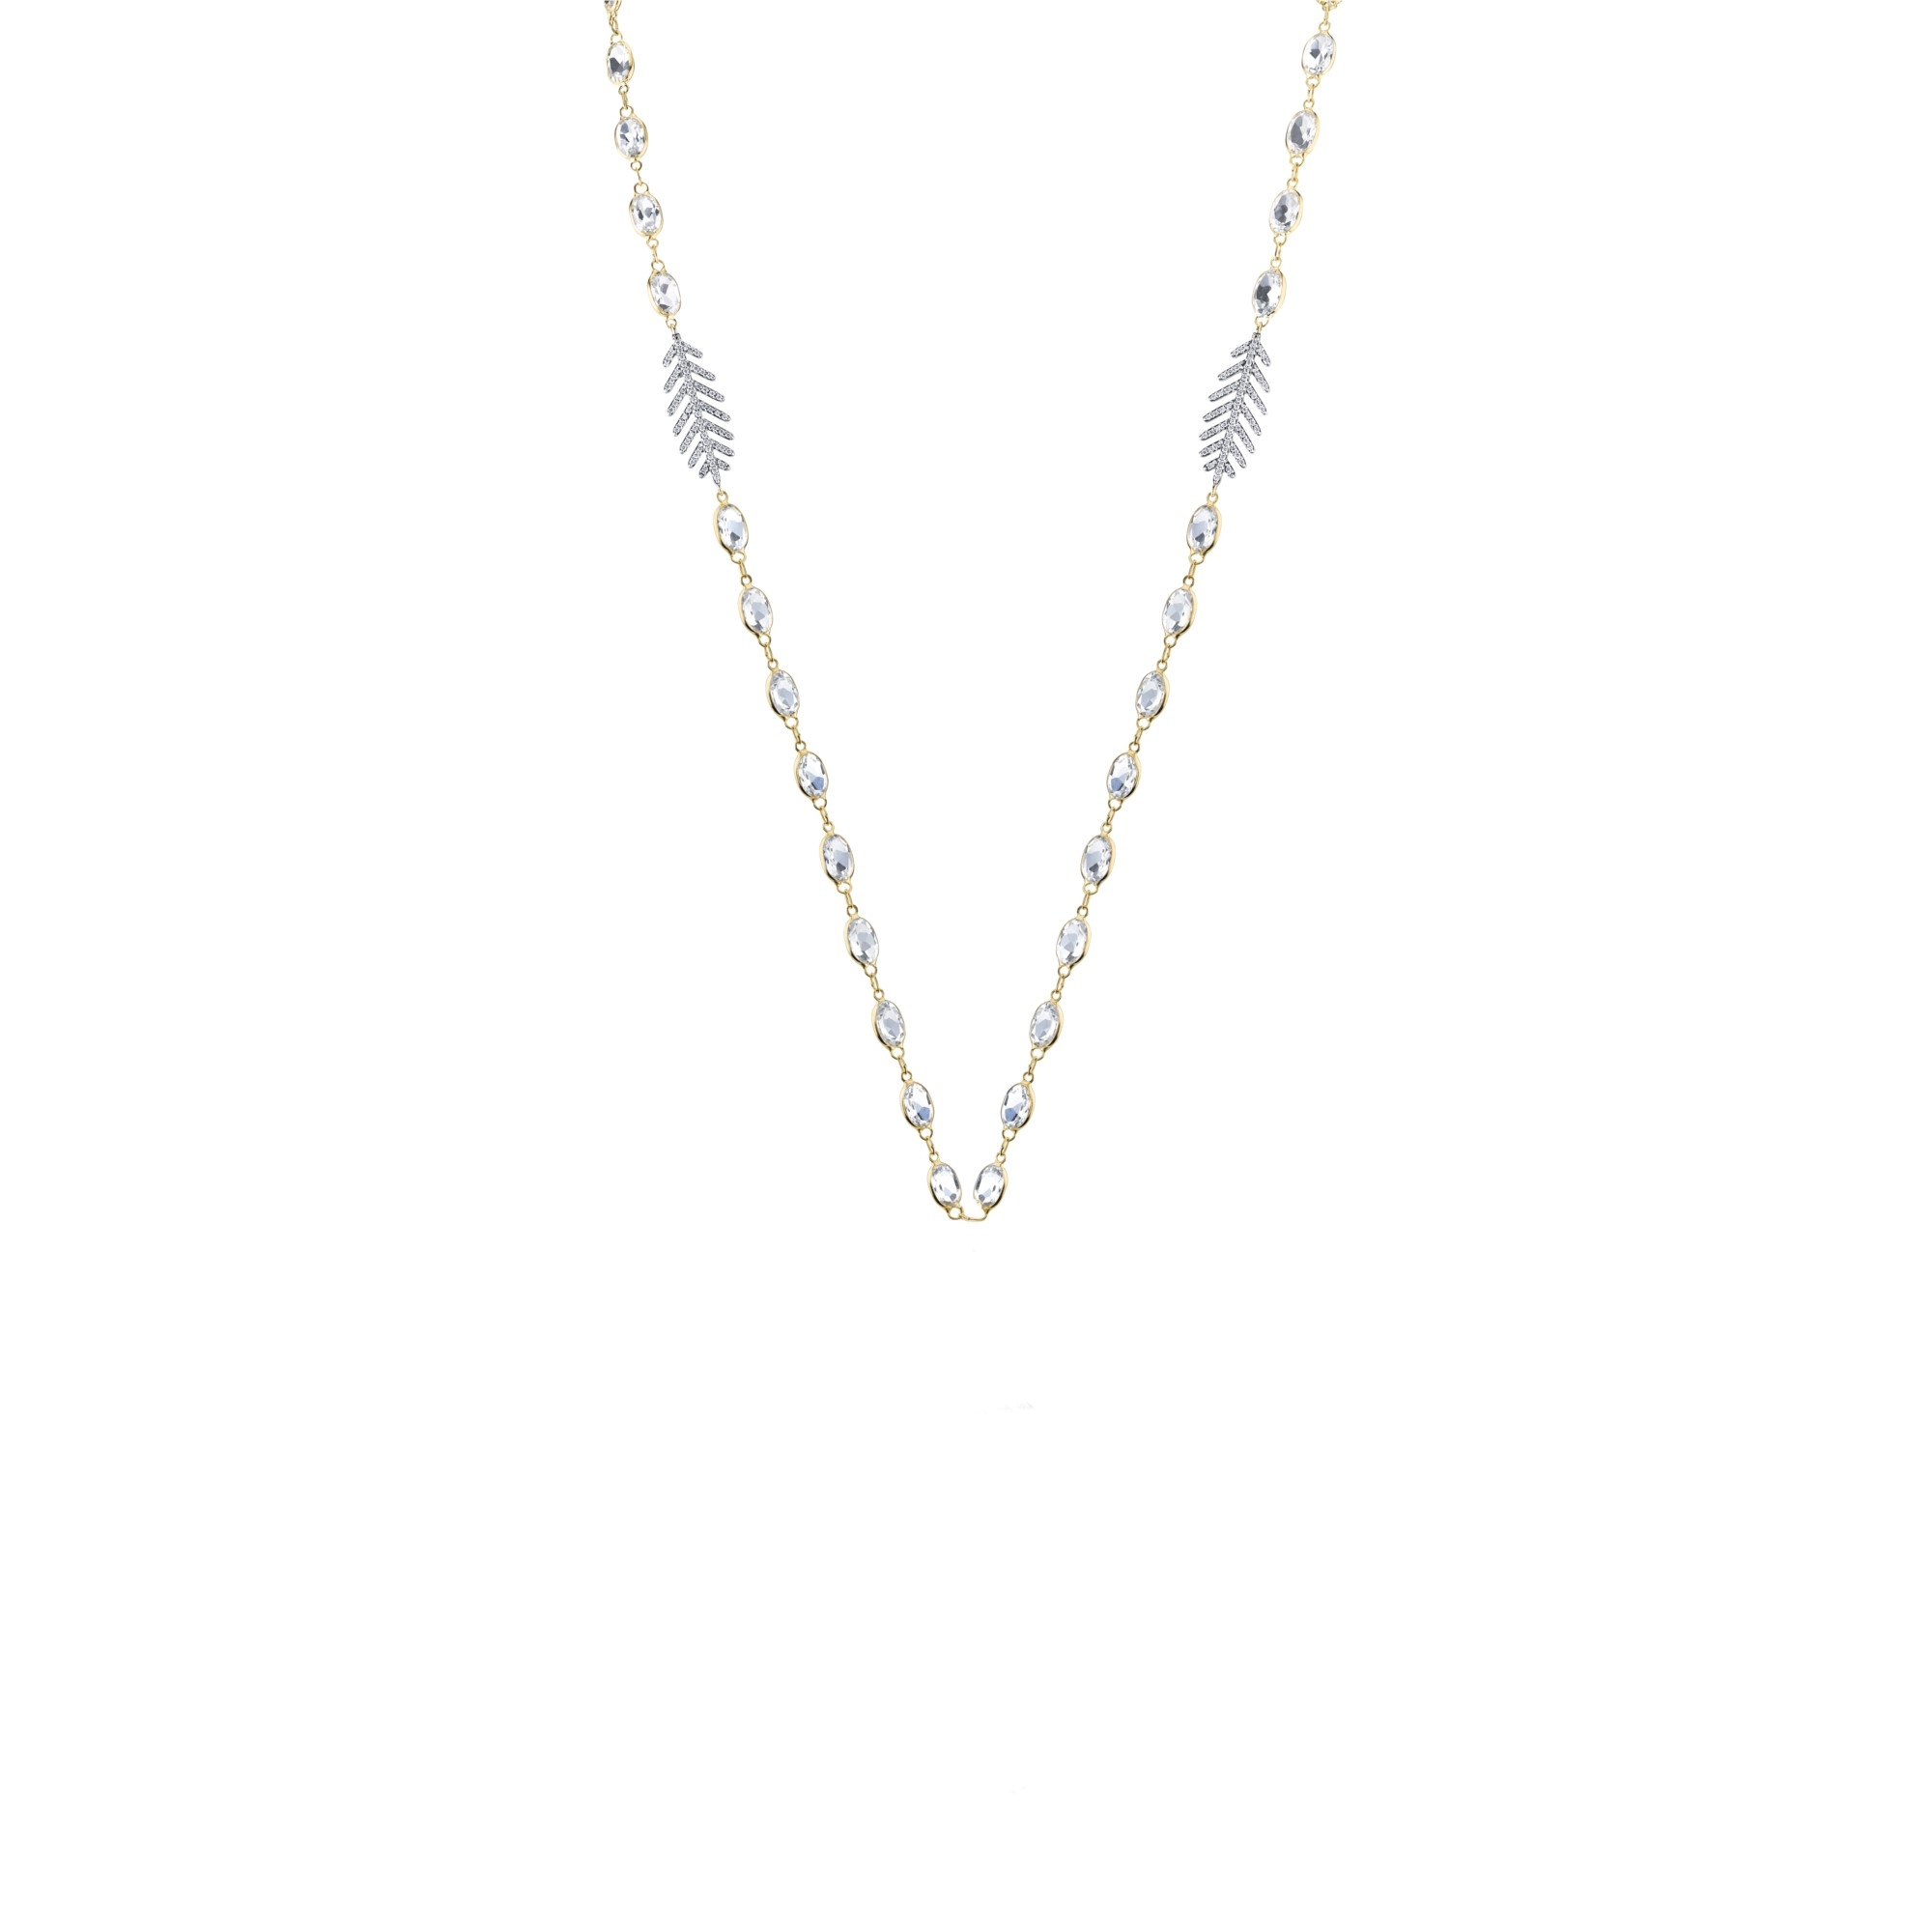 Sloane Street 18K Yellow Gold .46cts  Diamonds Gold Necklace with Stones CH018T-WT-WD-Y